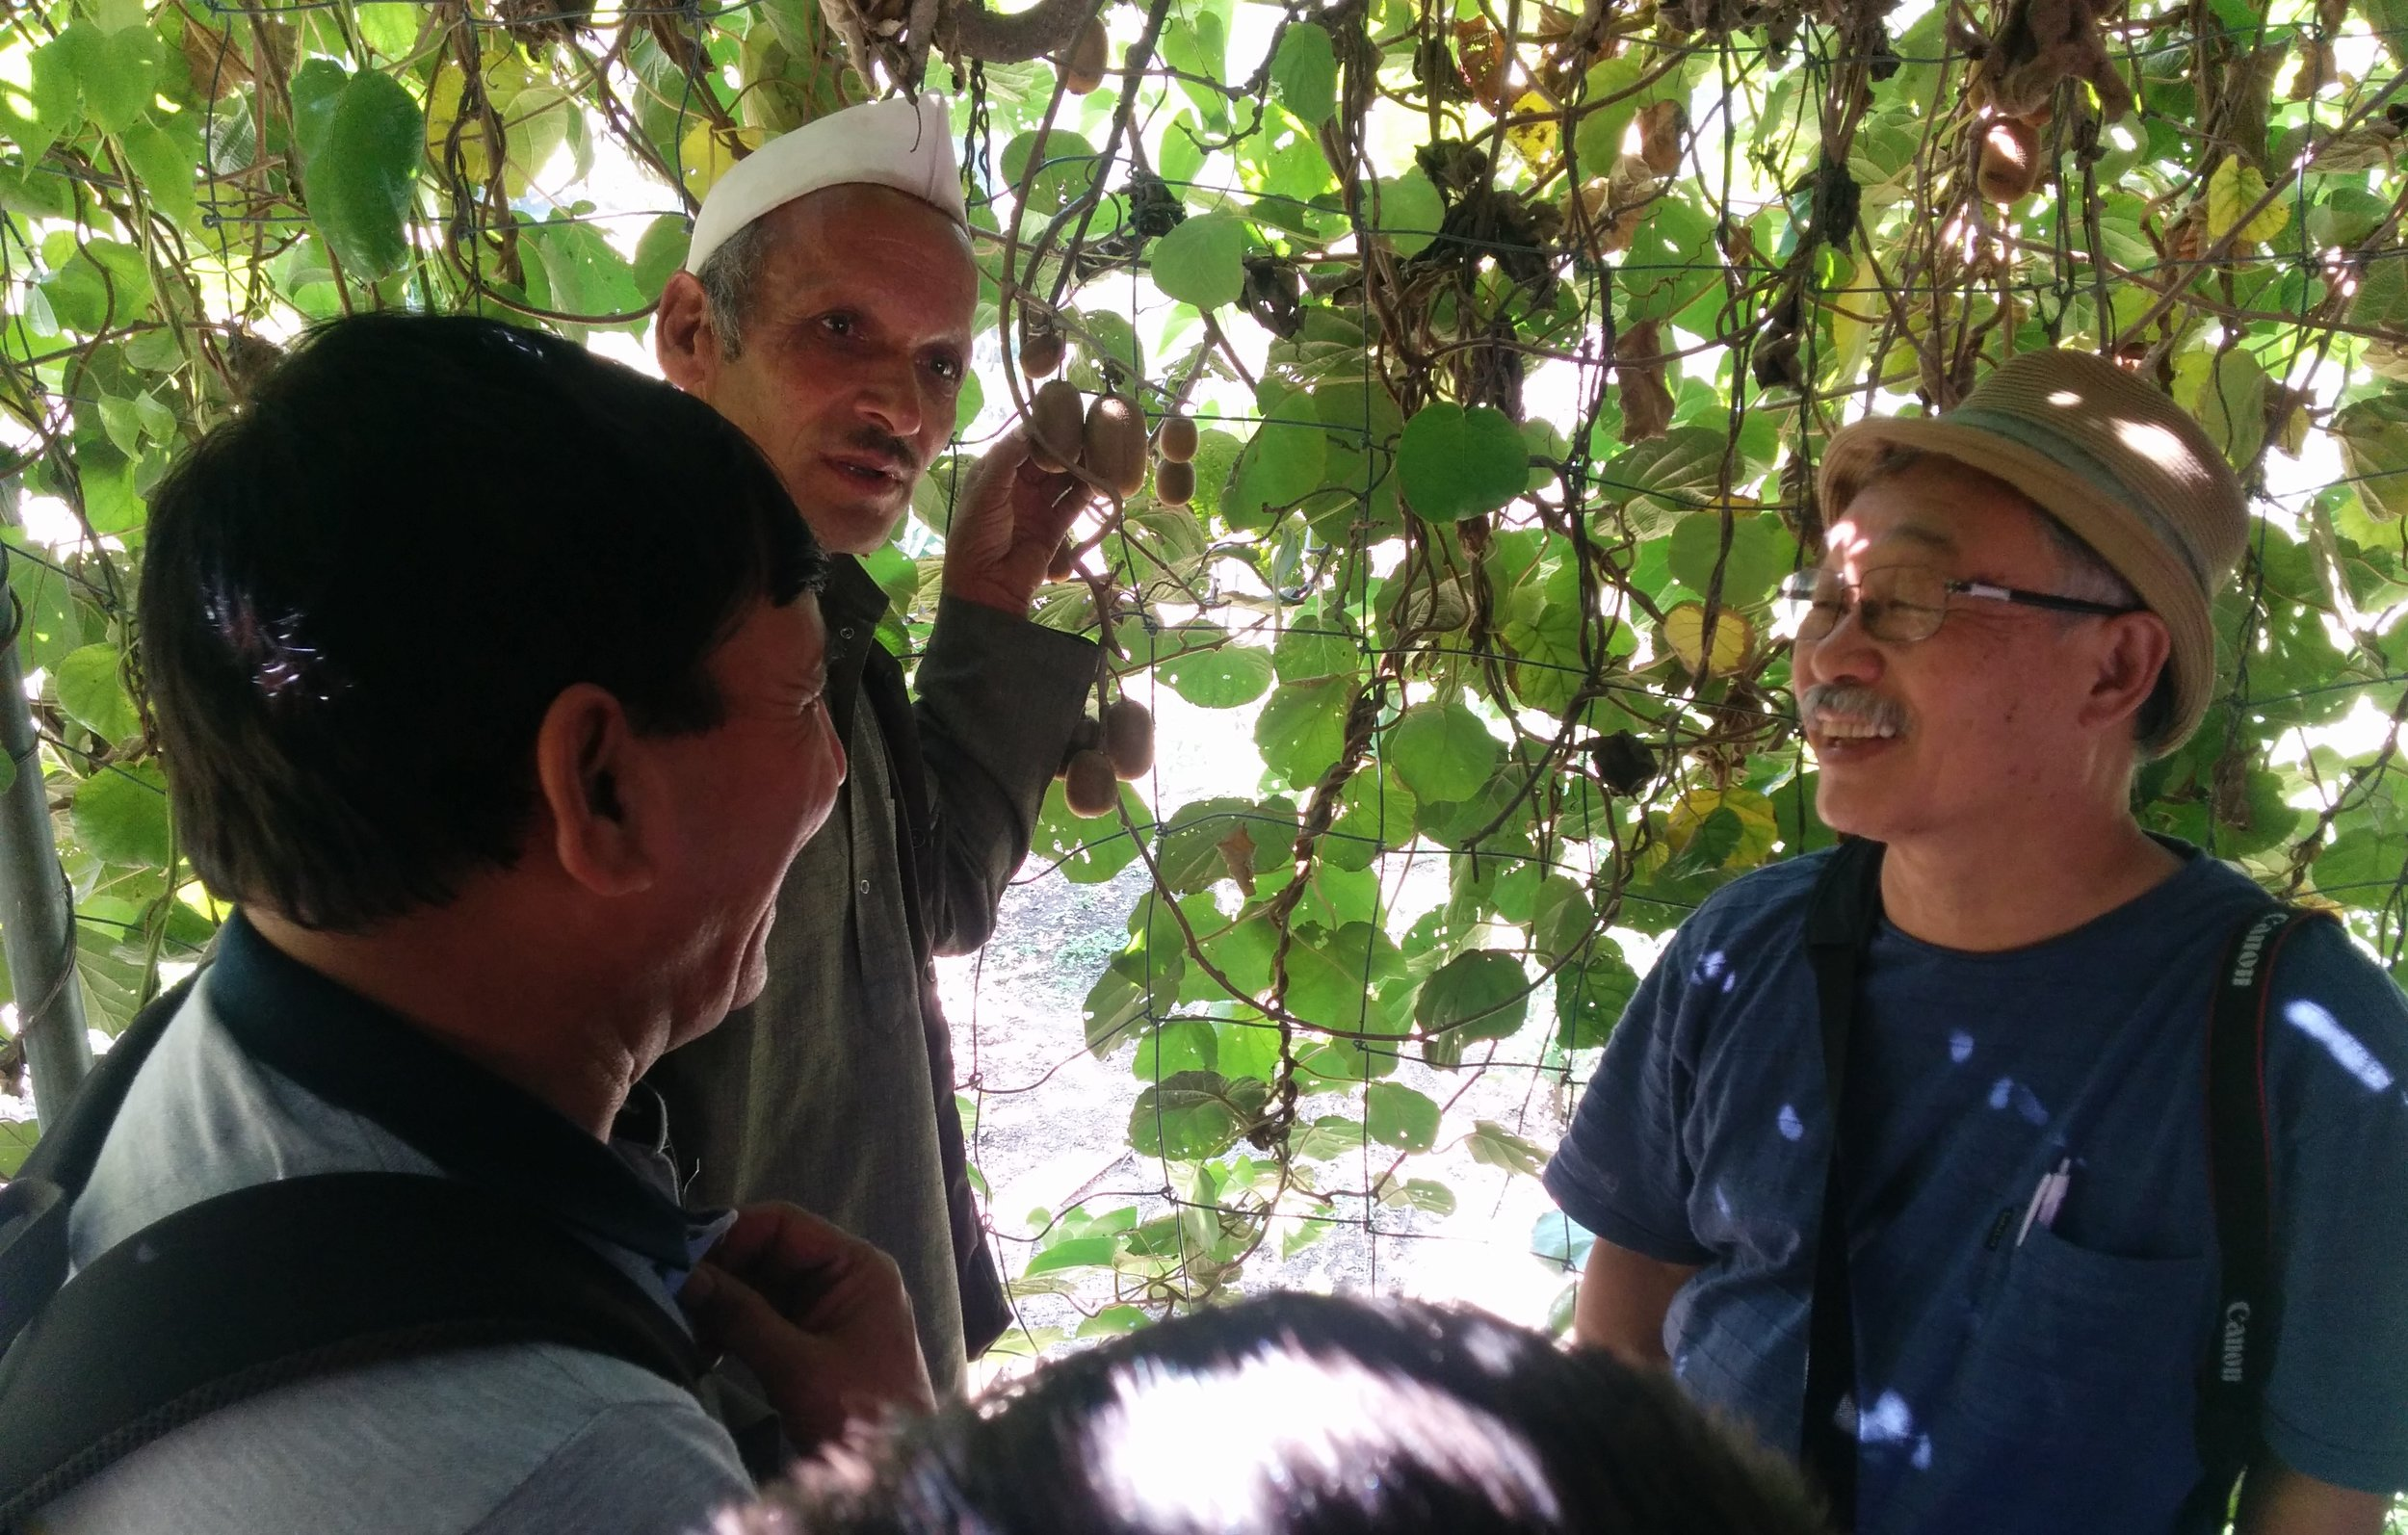 This Indian villager chose to organically farm kiwi fruit because of what other farmers are doing, his soil, the technical advice of a Japanese organic specialist available to him and his prediction of the future buying habits of consumers 100 km away.Much more complex than poker!(photo from MGVS field work)